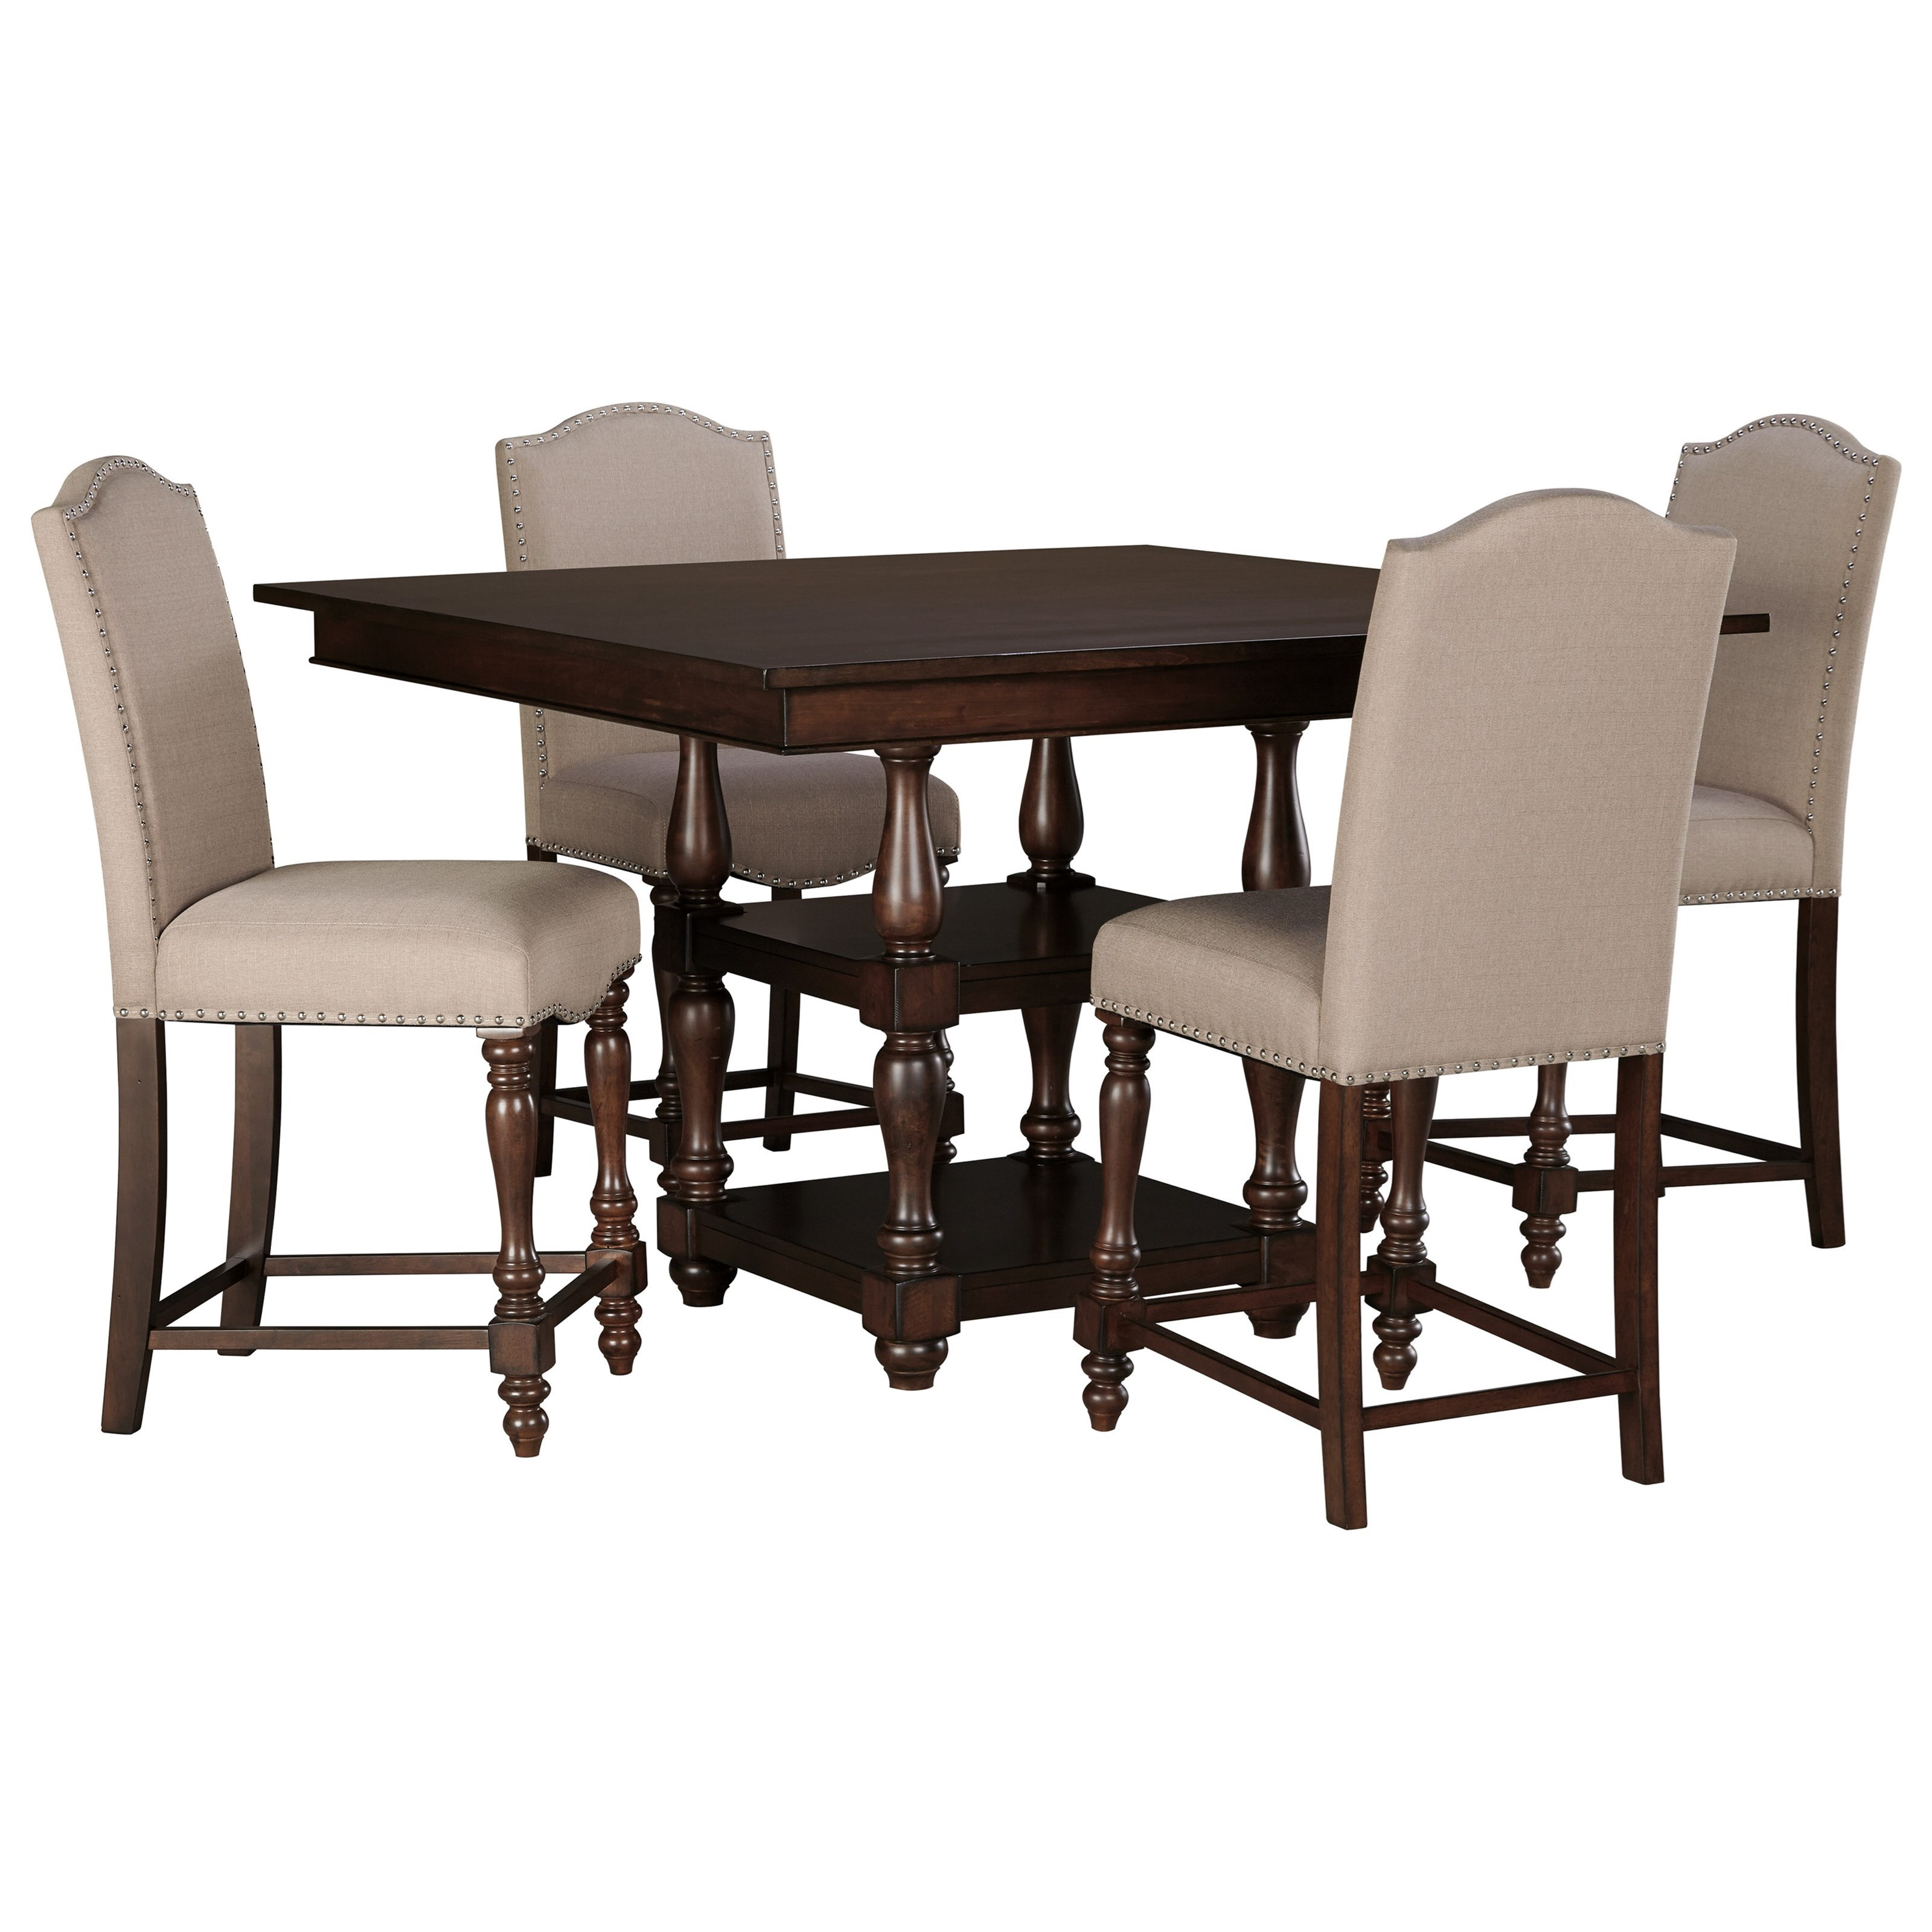 Signature Design by Ashley Baxenburg 5 Piece Square Dining